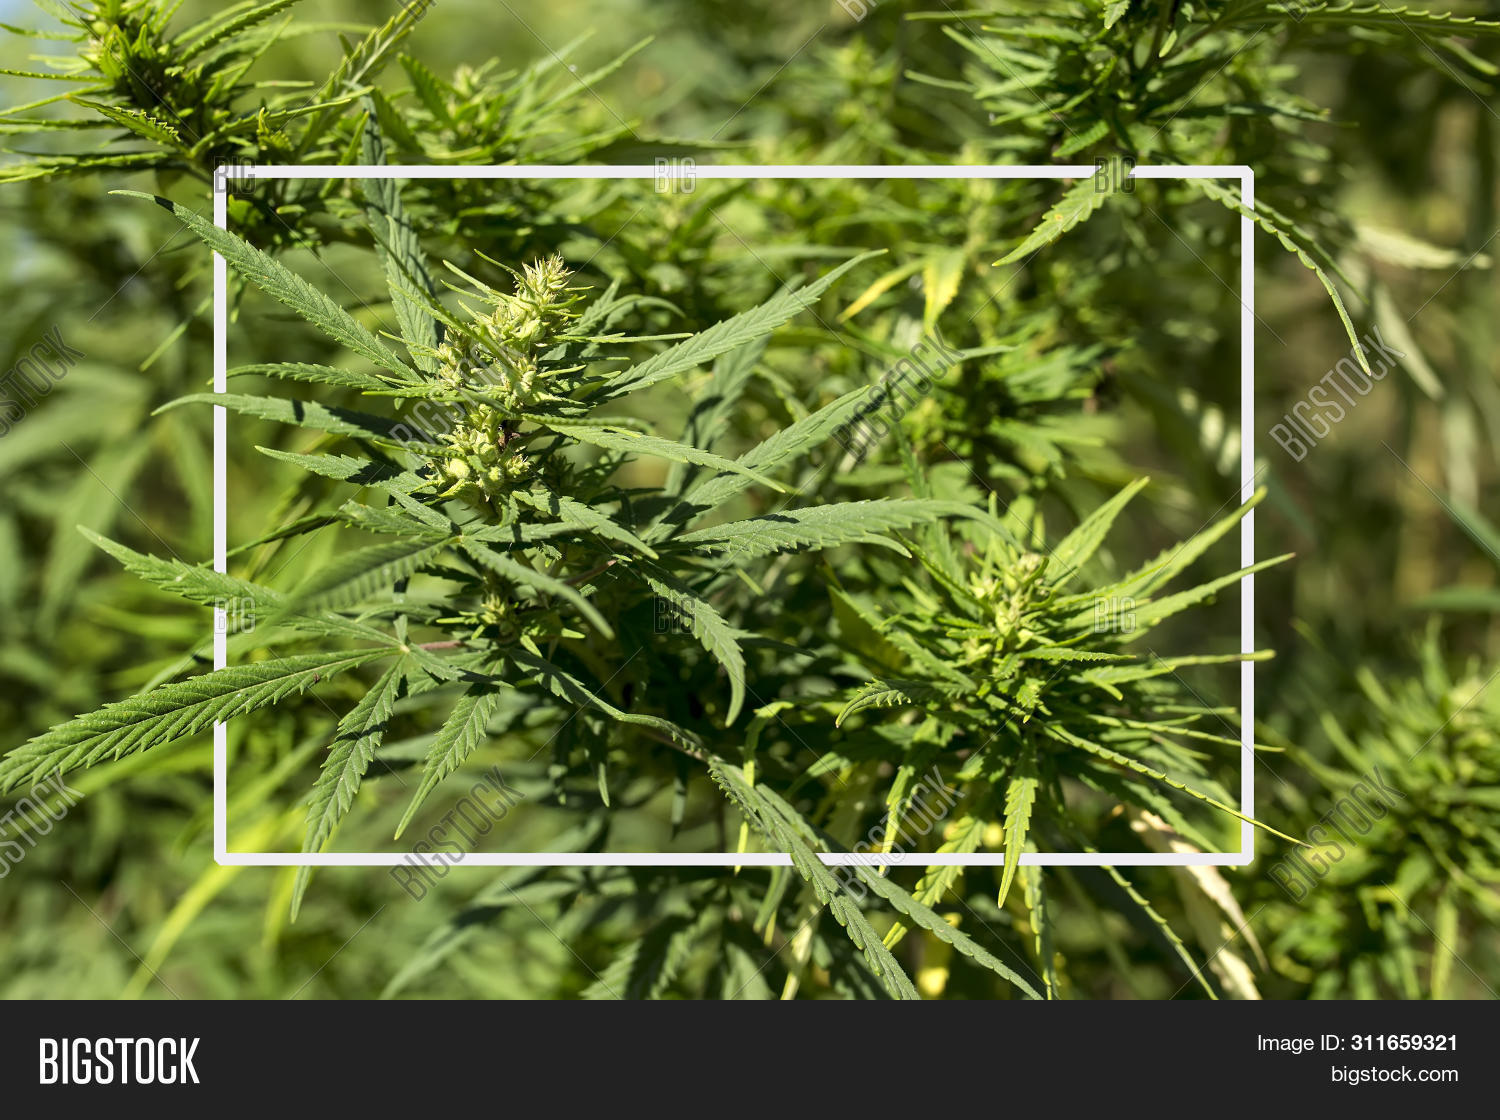 agriculture,background,bud,cannabis,canopy,crop,cultivation,culture,dabs,drug,farm,foliage,ganja,garden,grass,green,grow,growing,growth,health,hemp,herb,herbal,high,home,illegal,indoor,leaf,leaves,legal,marihuana,marijuana,medical,medicinal,medicine,narcotic,natural,nature,oil,old,plant,pot,sativa,shop,thc,vintage,weed,white